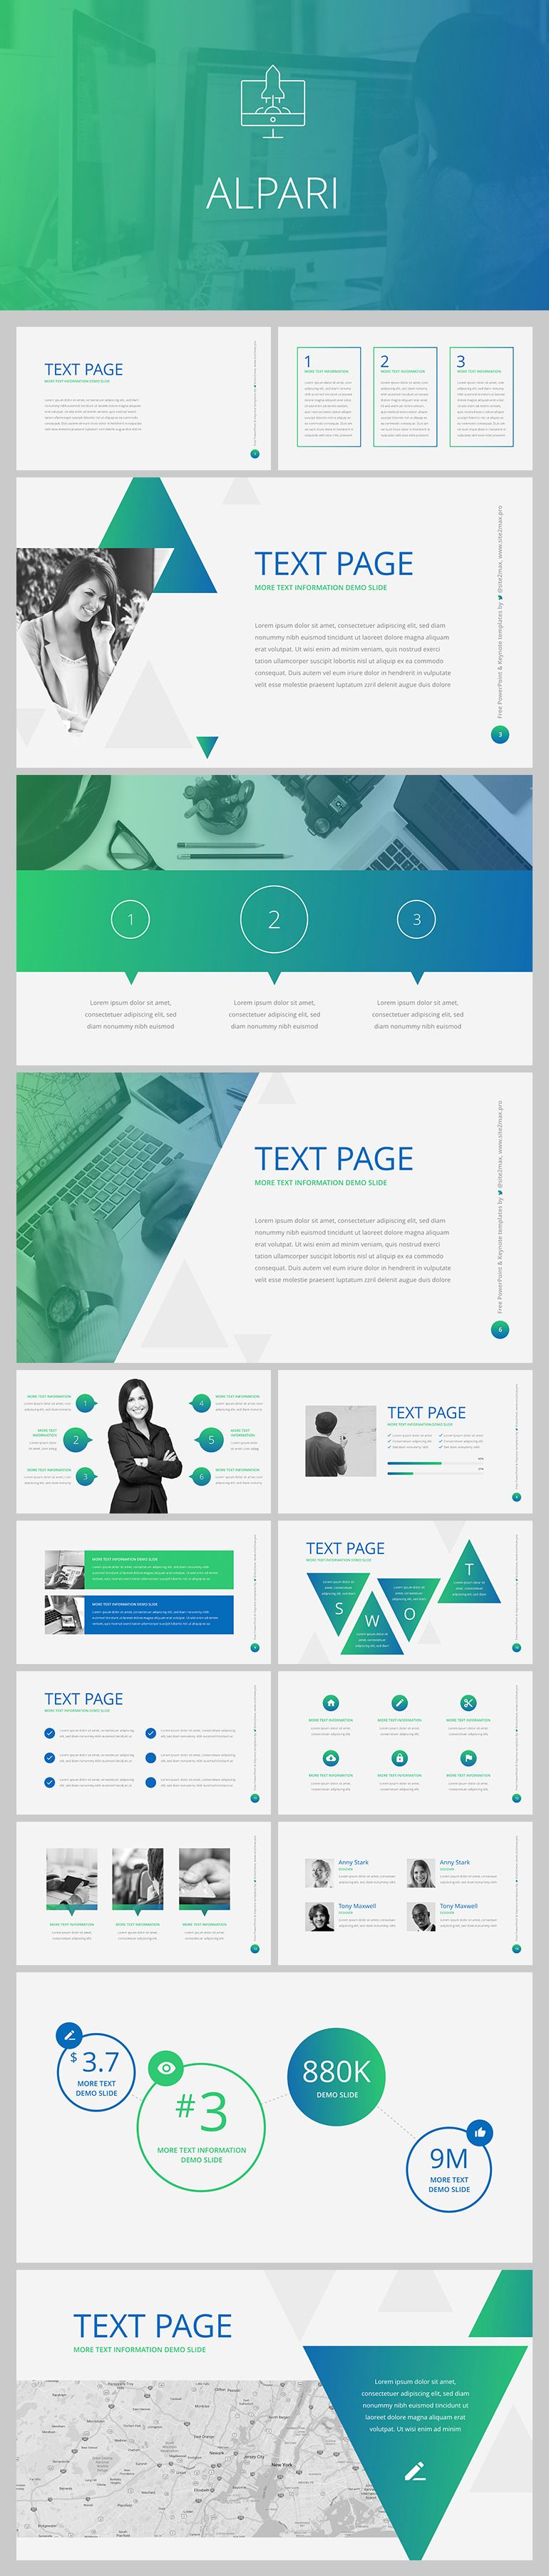 ppt free powerpoint template for ppt free powerpoint template for corporate introduction toneelgroepblik Choice Image